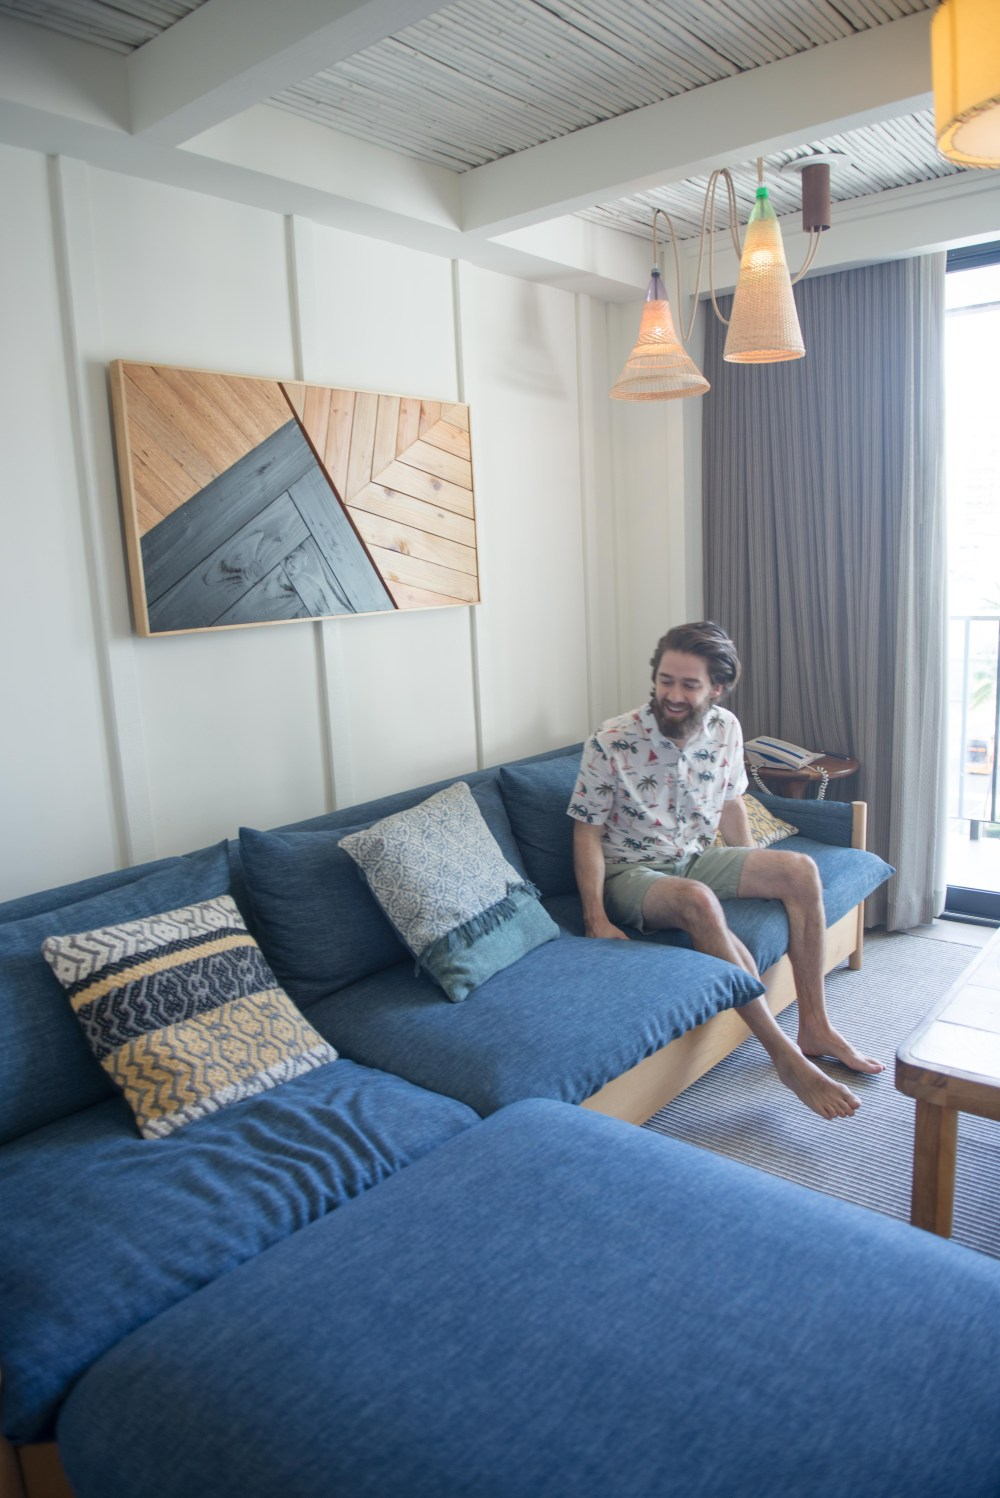 Places to Stay in Oahu, Hawaii: The Surfjack Hotel - living room #camandtay #camlee